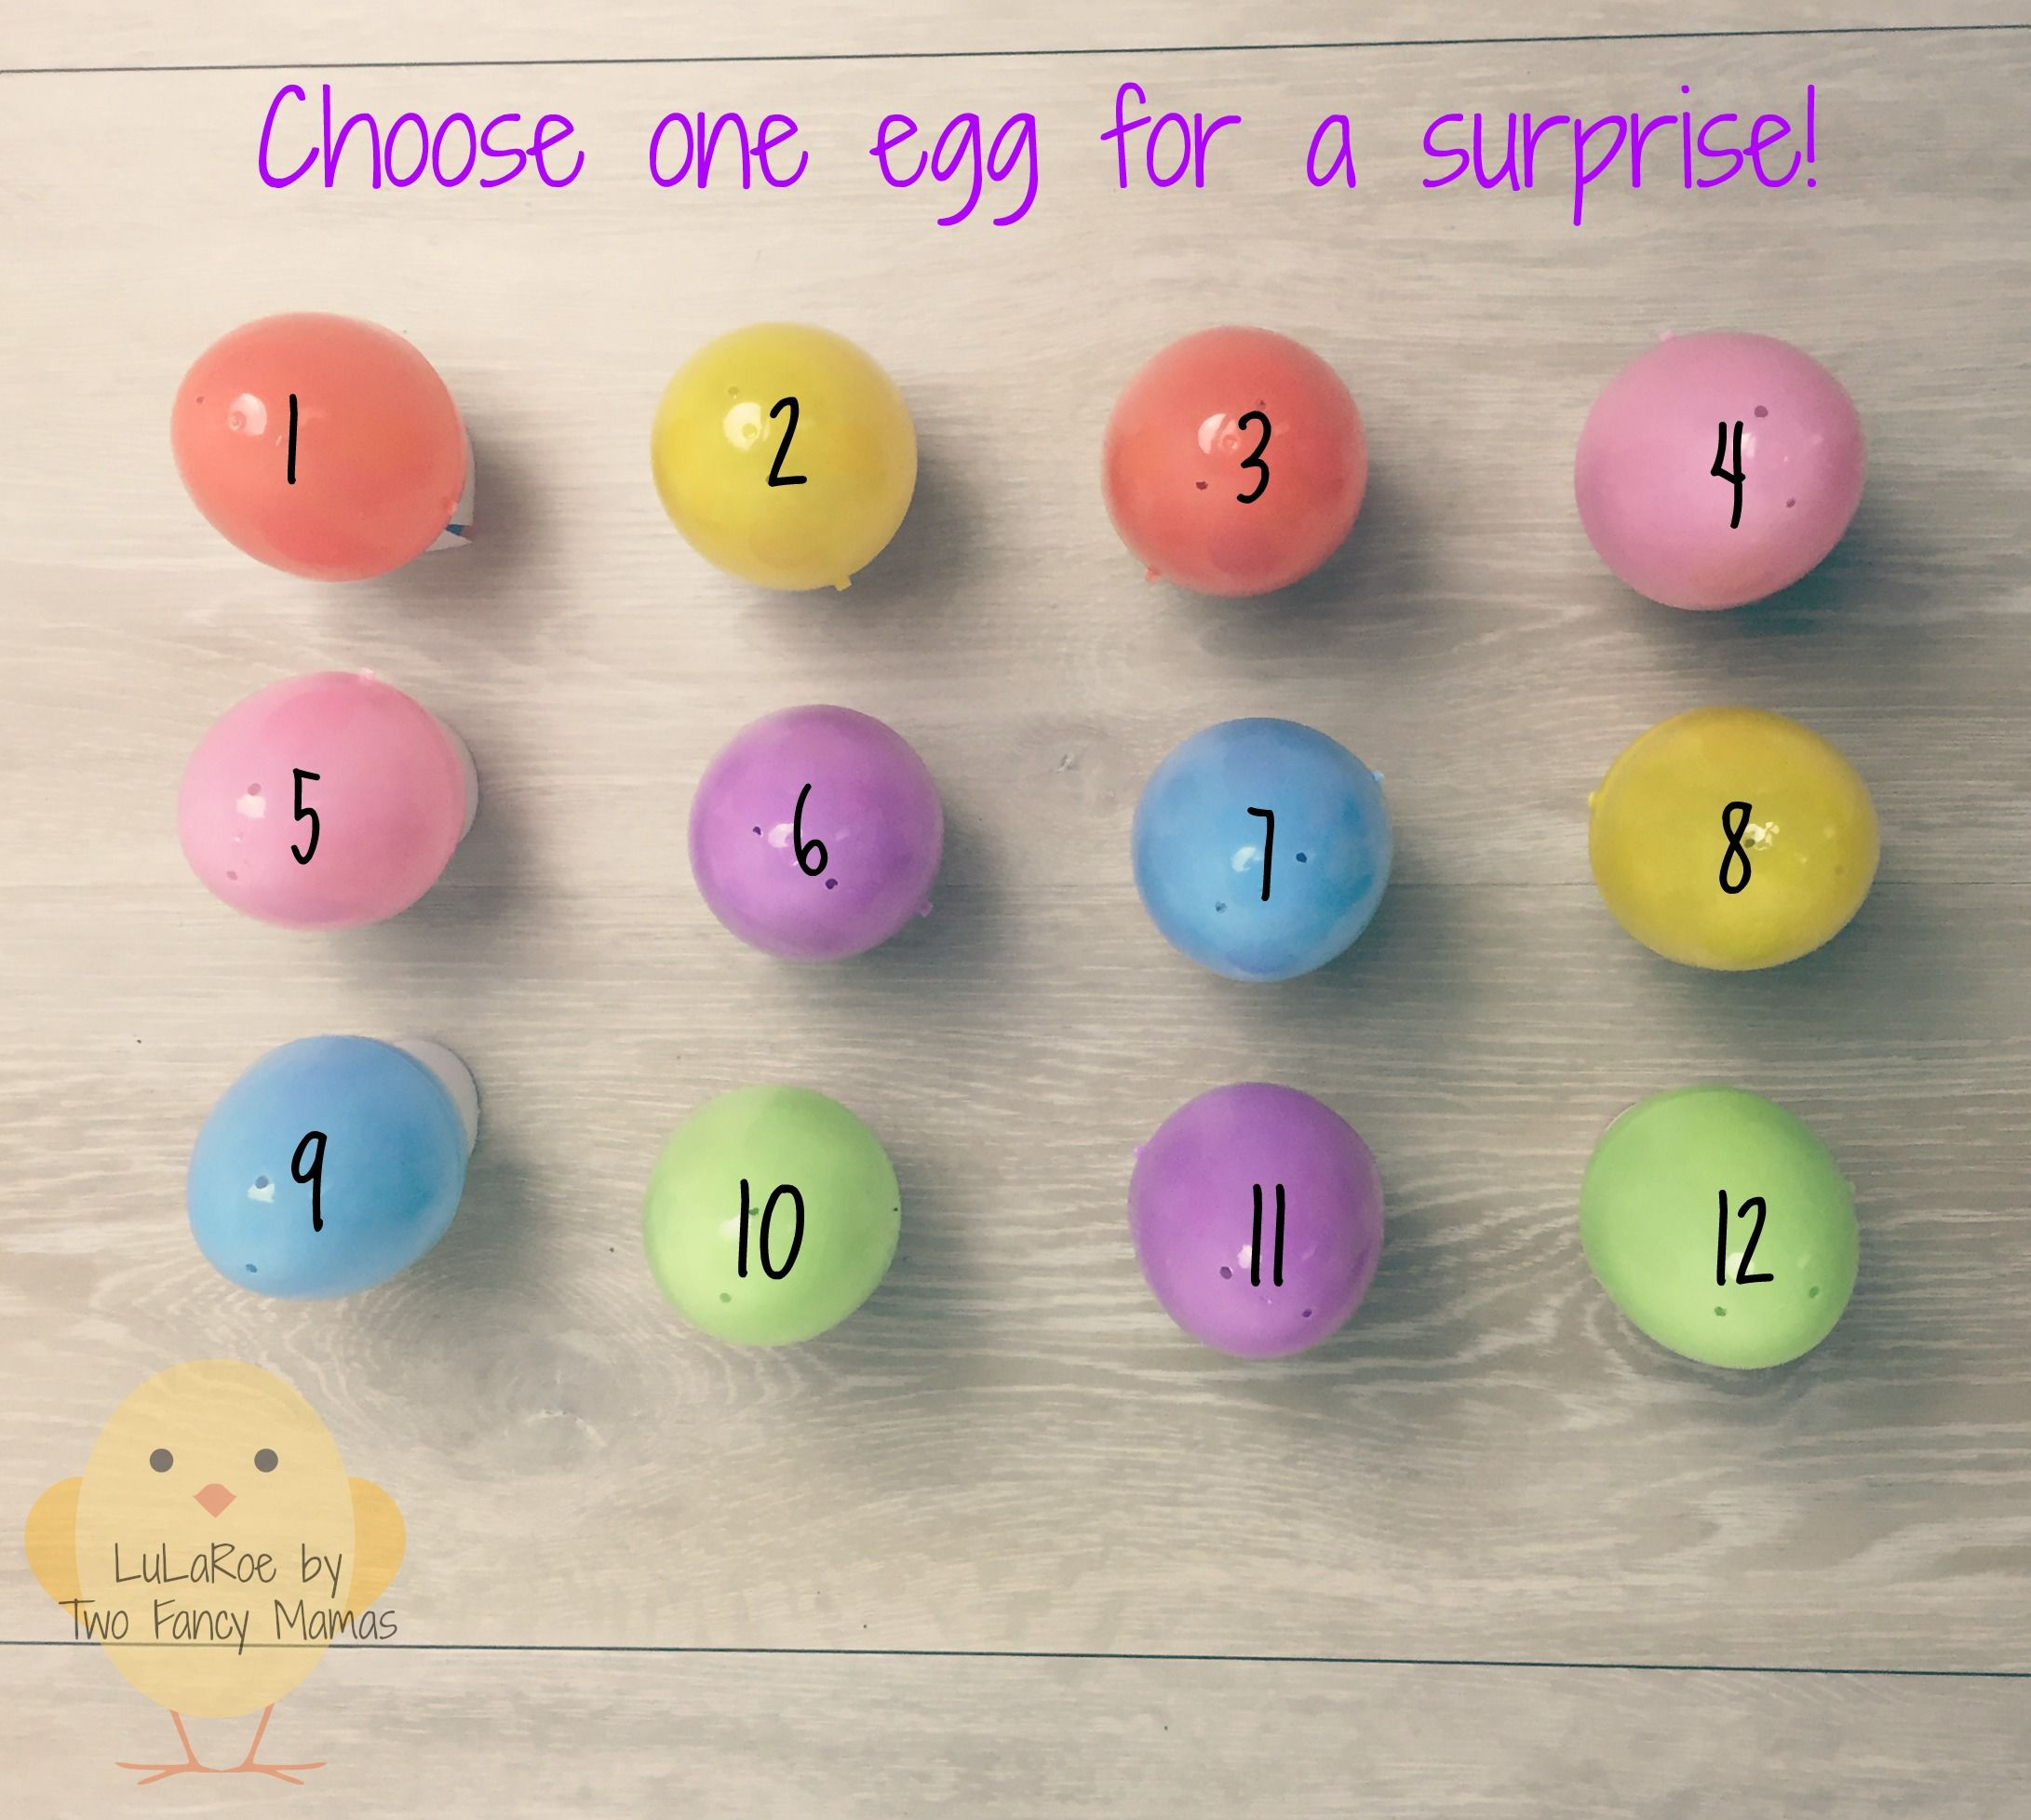 Ok girls time for an easter egg surprise just pick 1 egg and ok girls time for an easter egg surprise just pick 1 egg and comment negle Choice Image